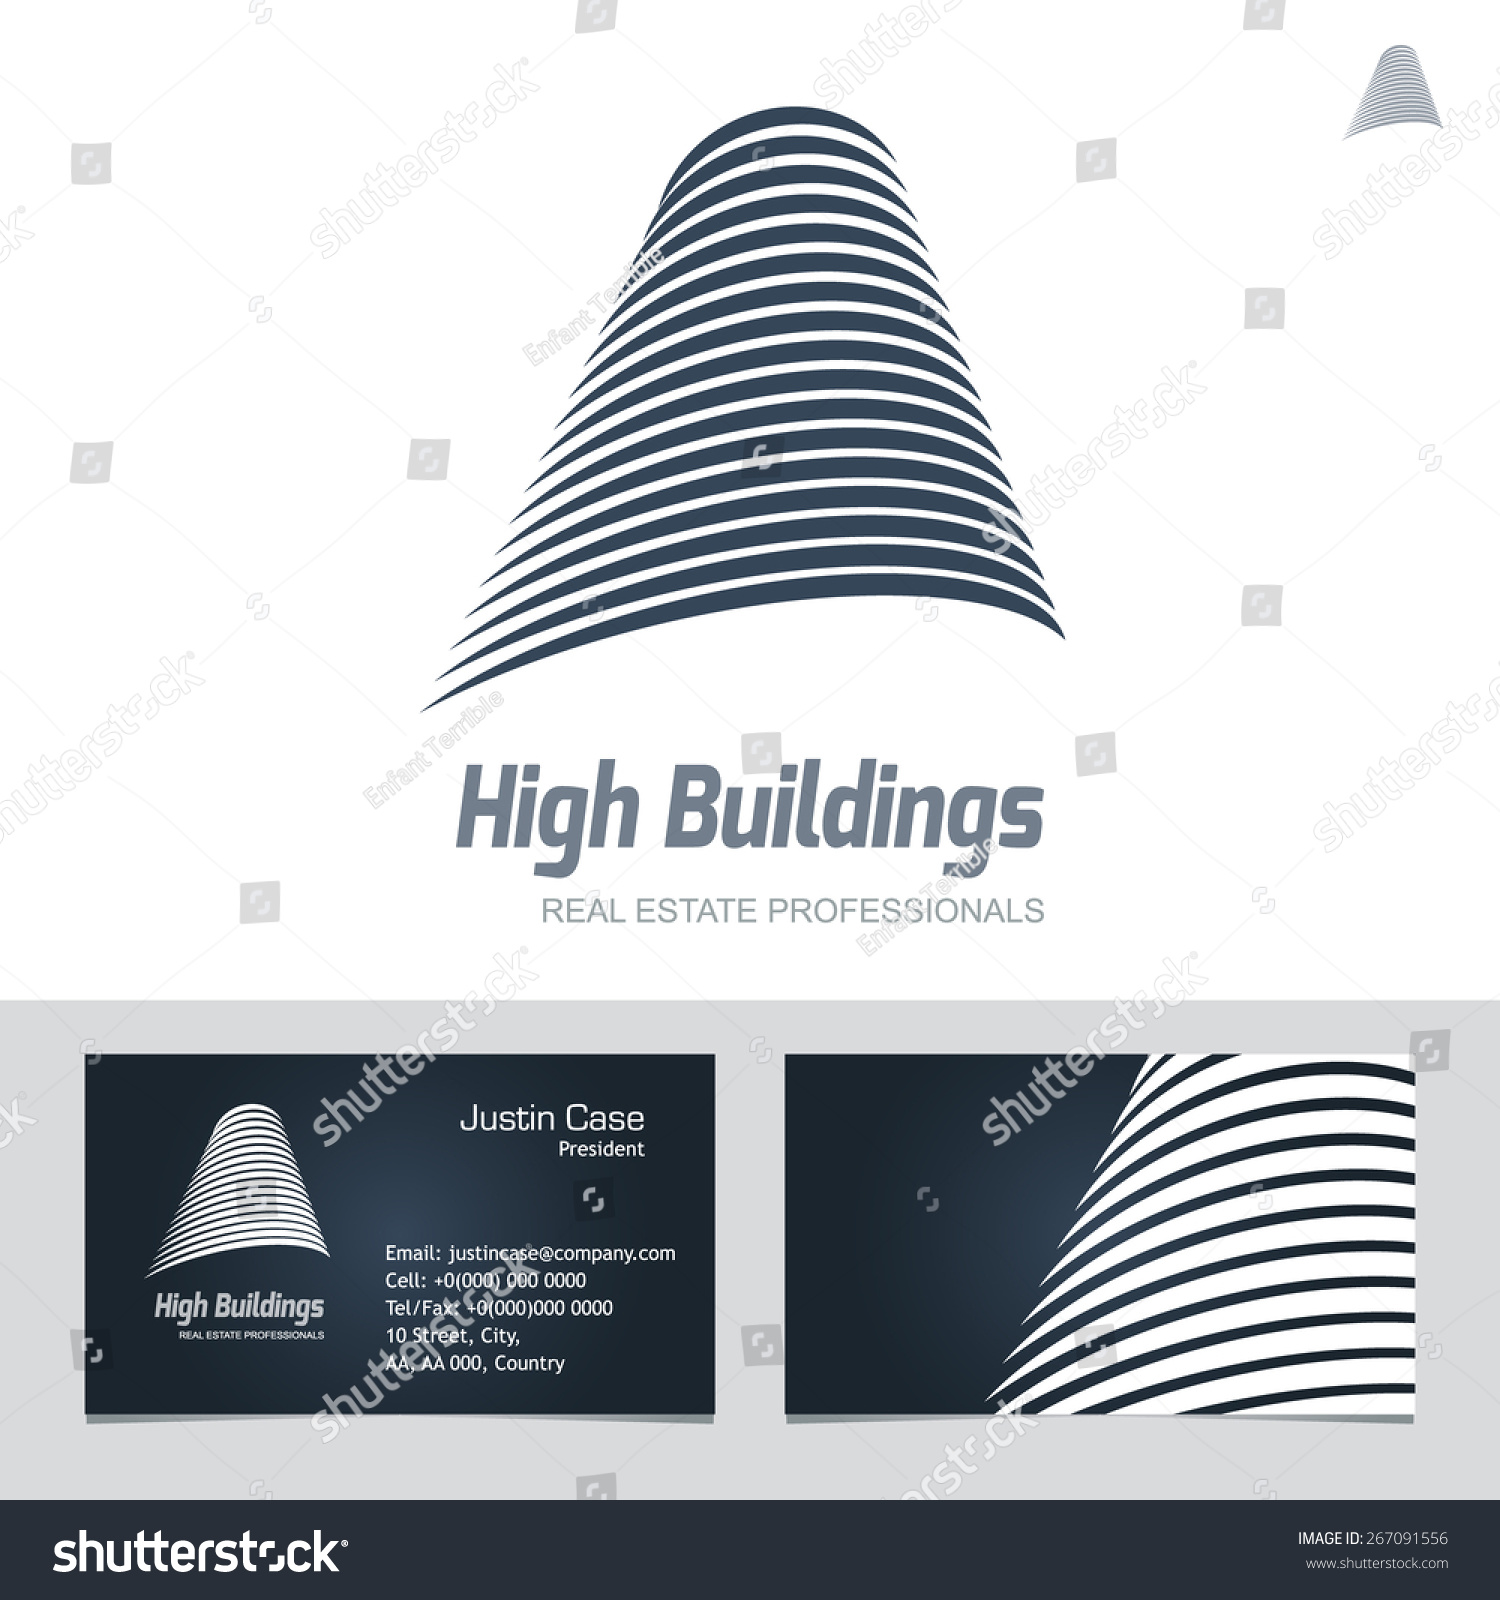 Real estate business sign business card stock vector 2018 real estate business sign business card vector template for architecture bureau insurance brokerage reheart Image collections